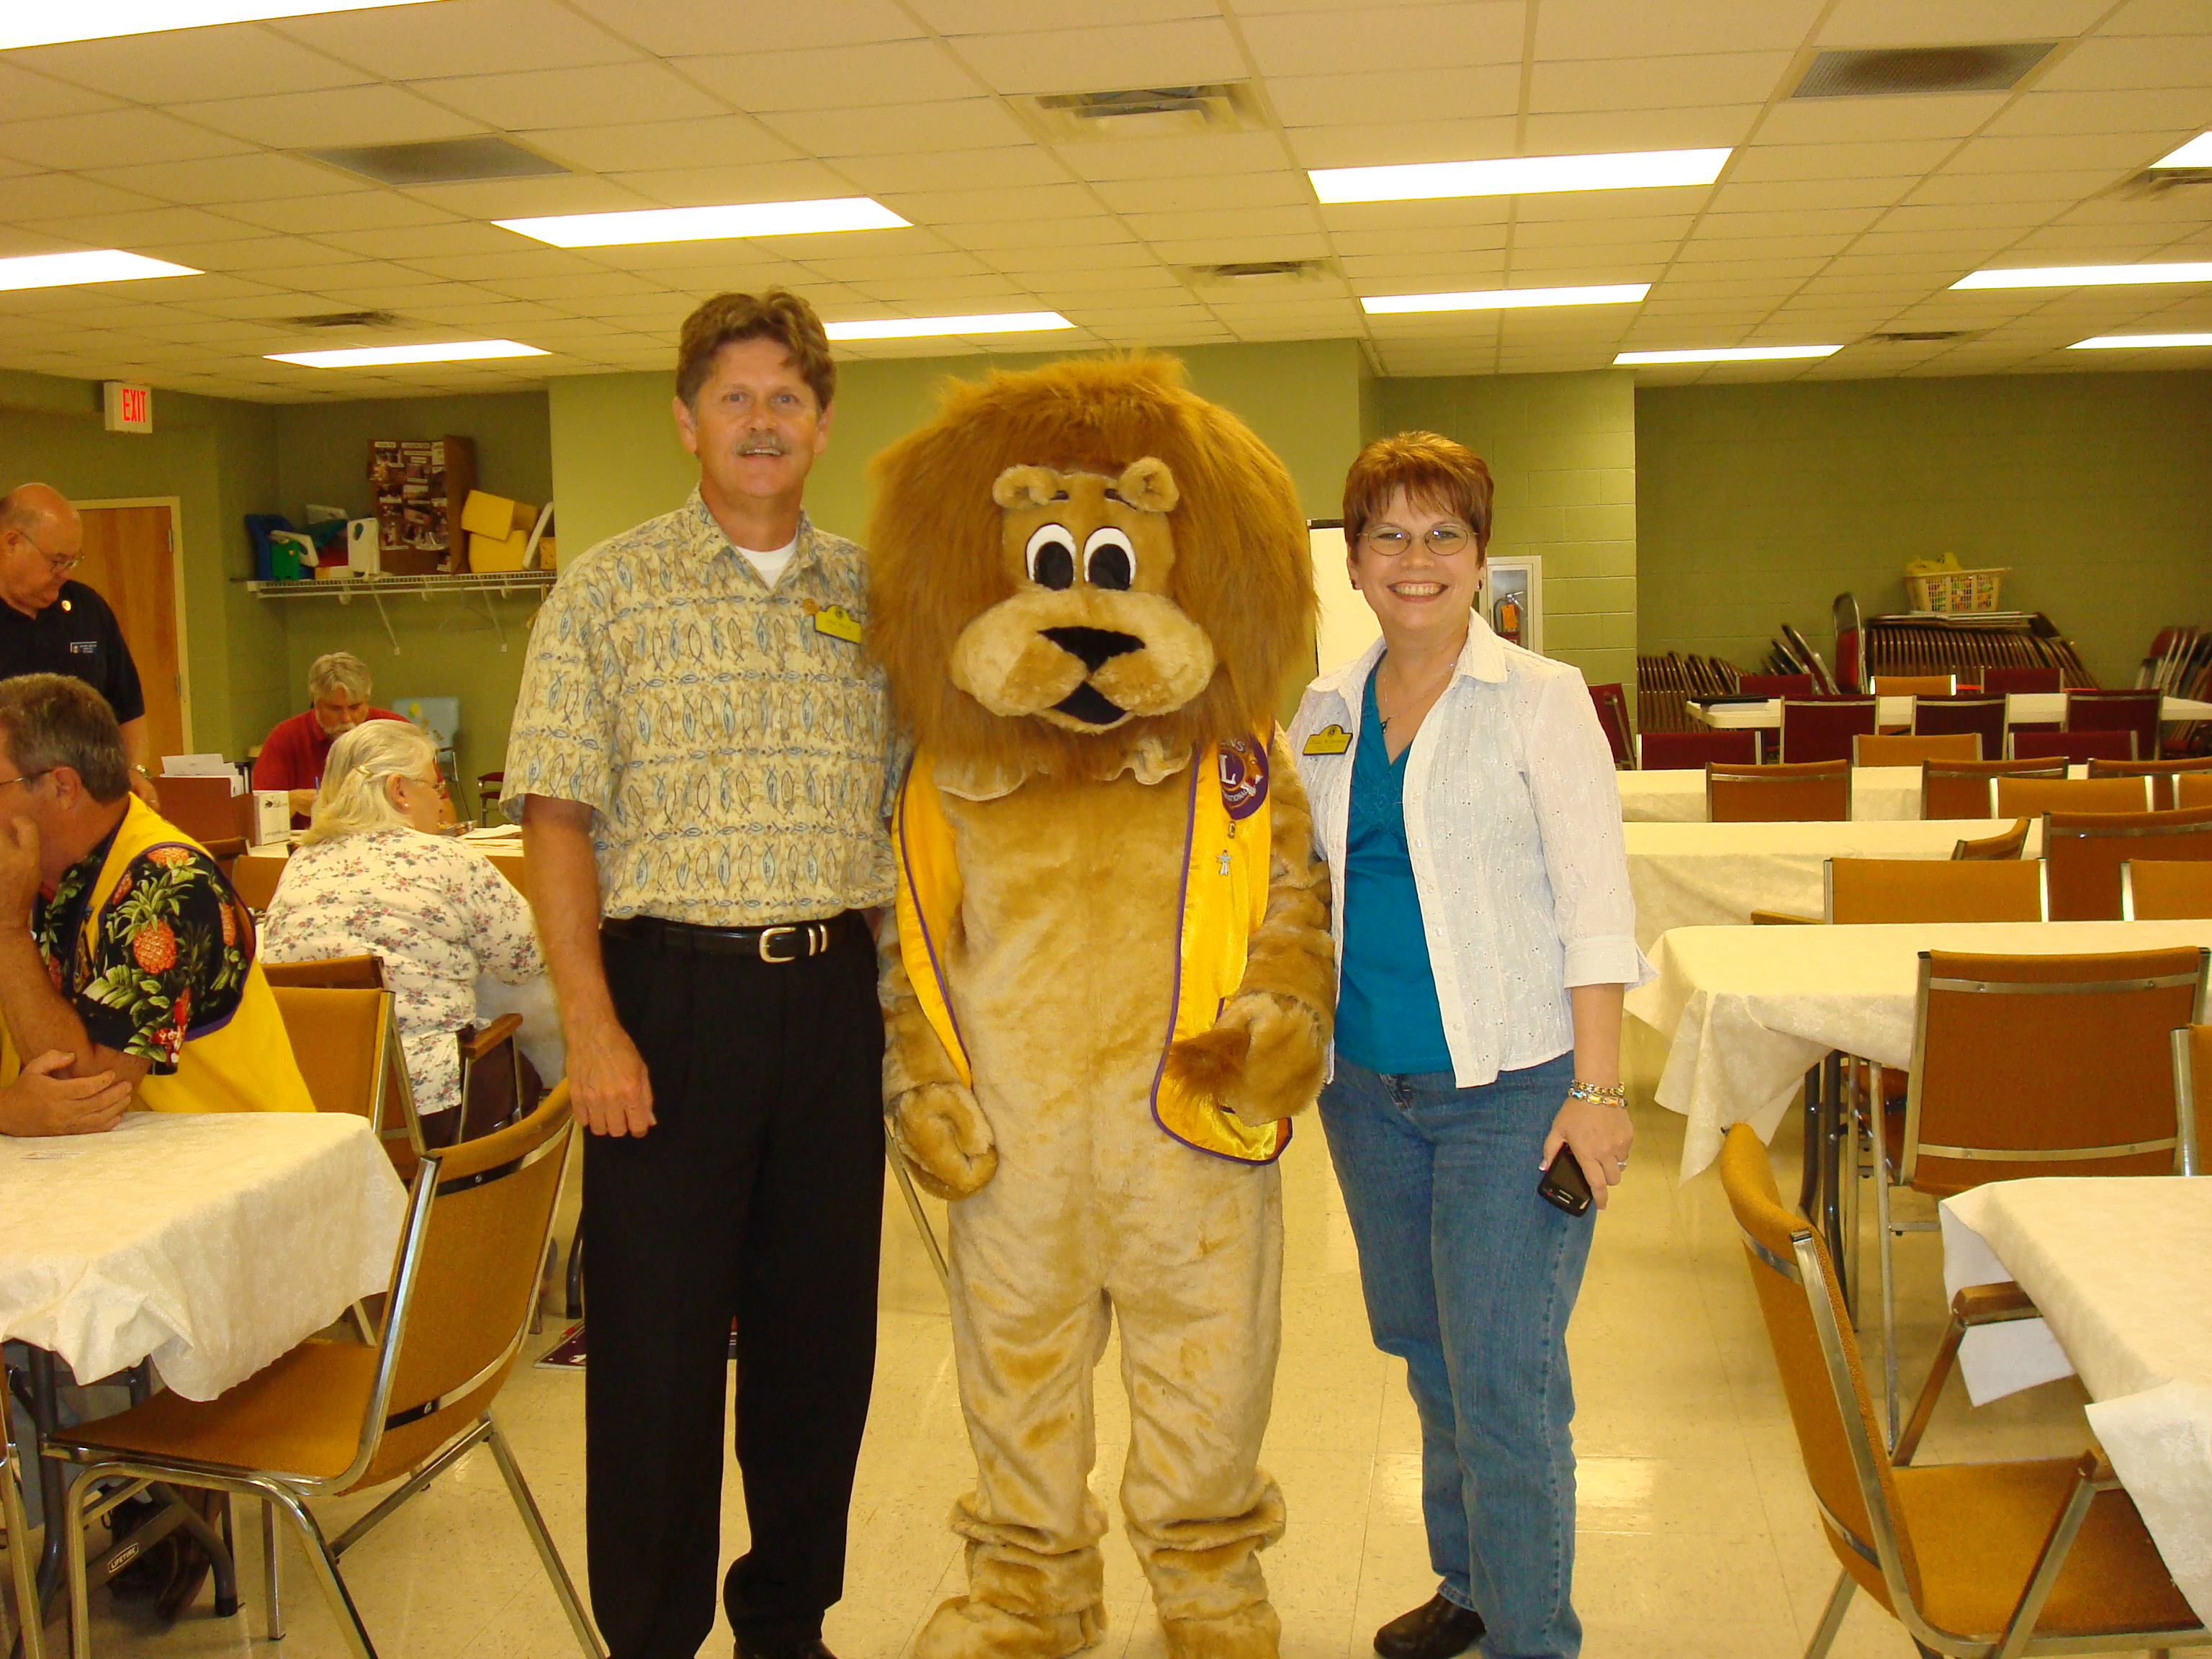 Lions John Black, Paws, and Diane Wilkerson